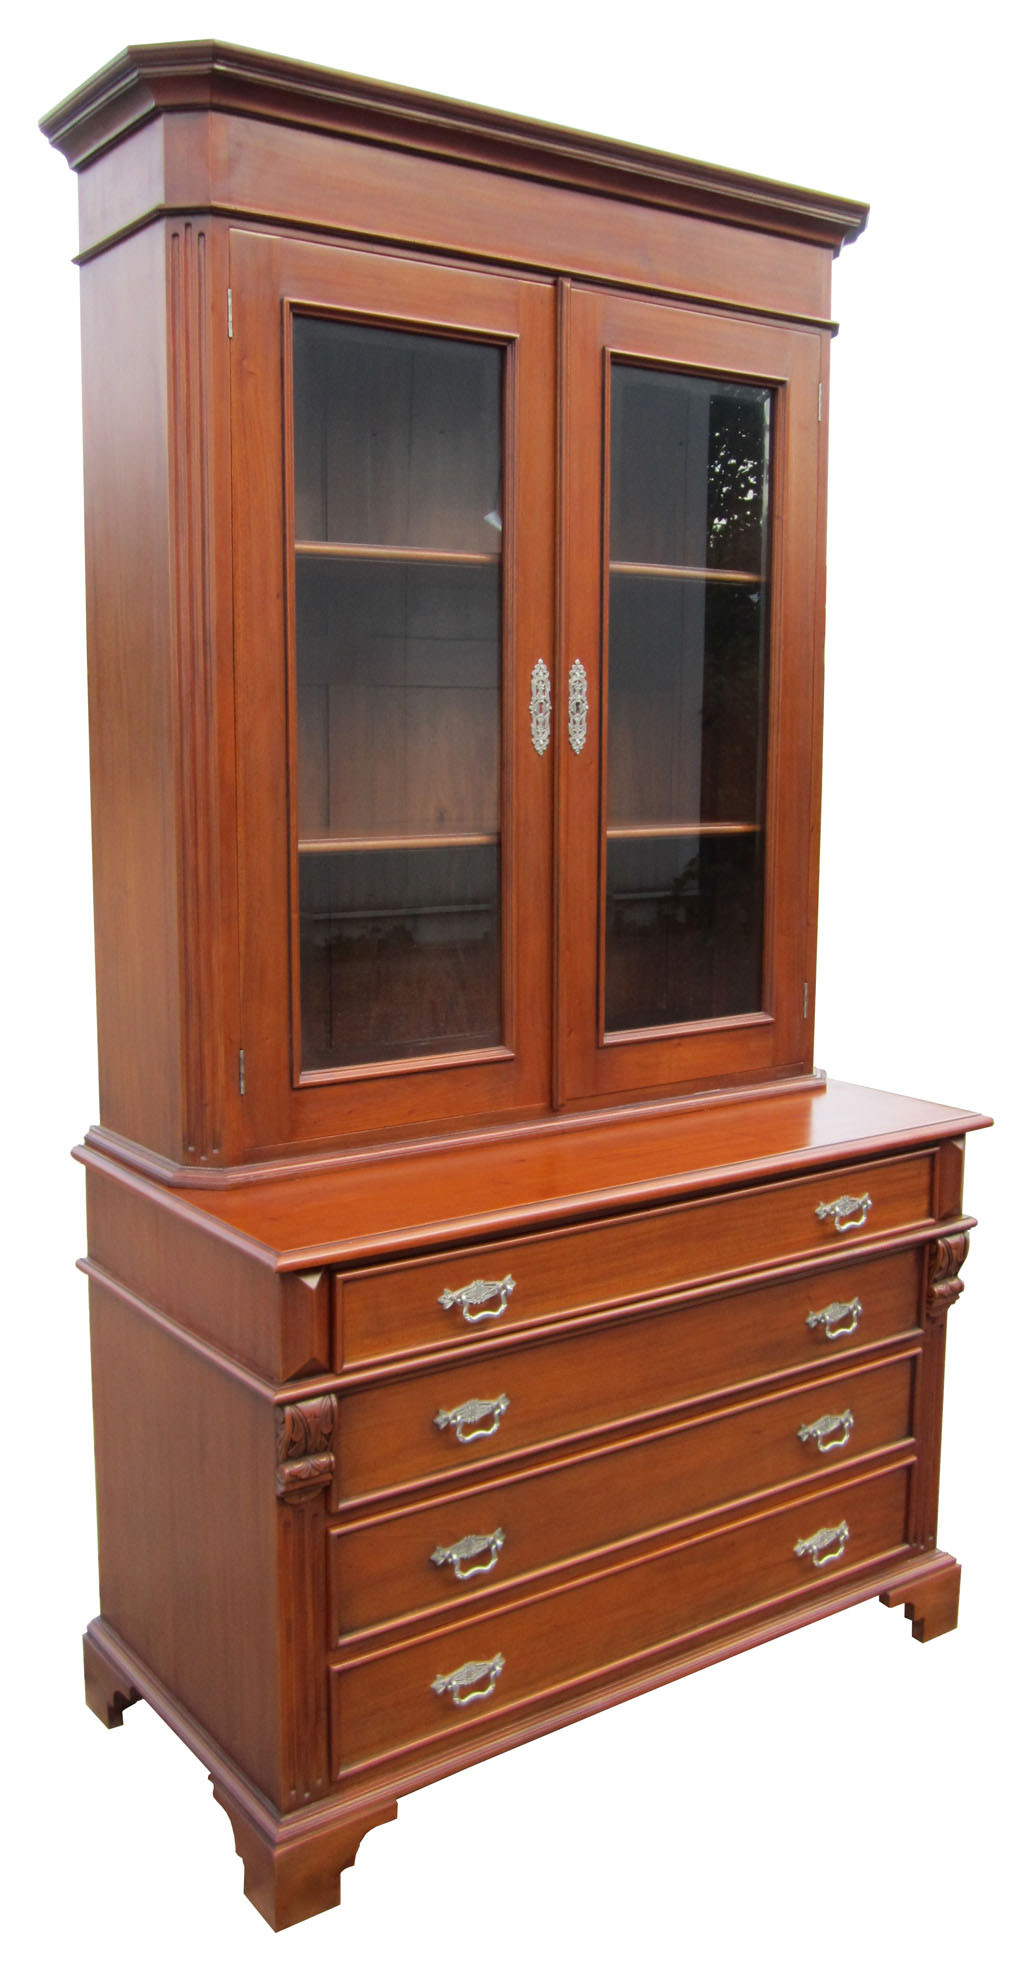 biedermeier b cherschrank antik stil kirsche massiv. Black Bedroom Furniture Sets. Home Design Ideas